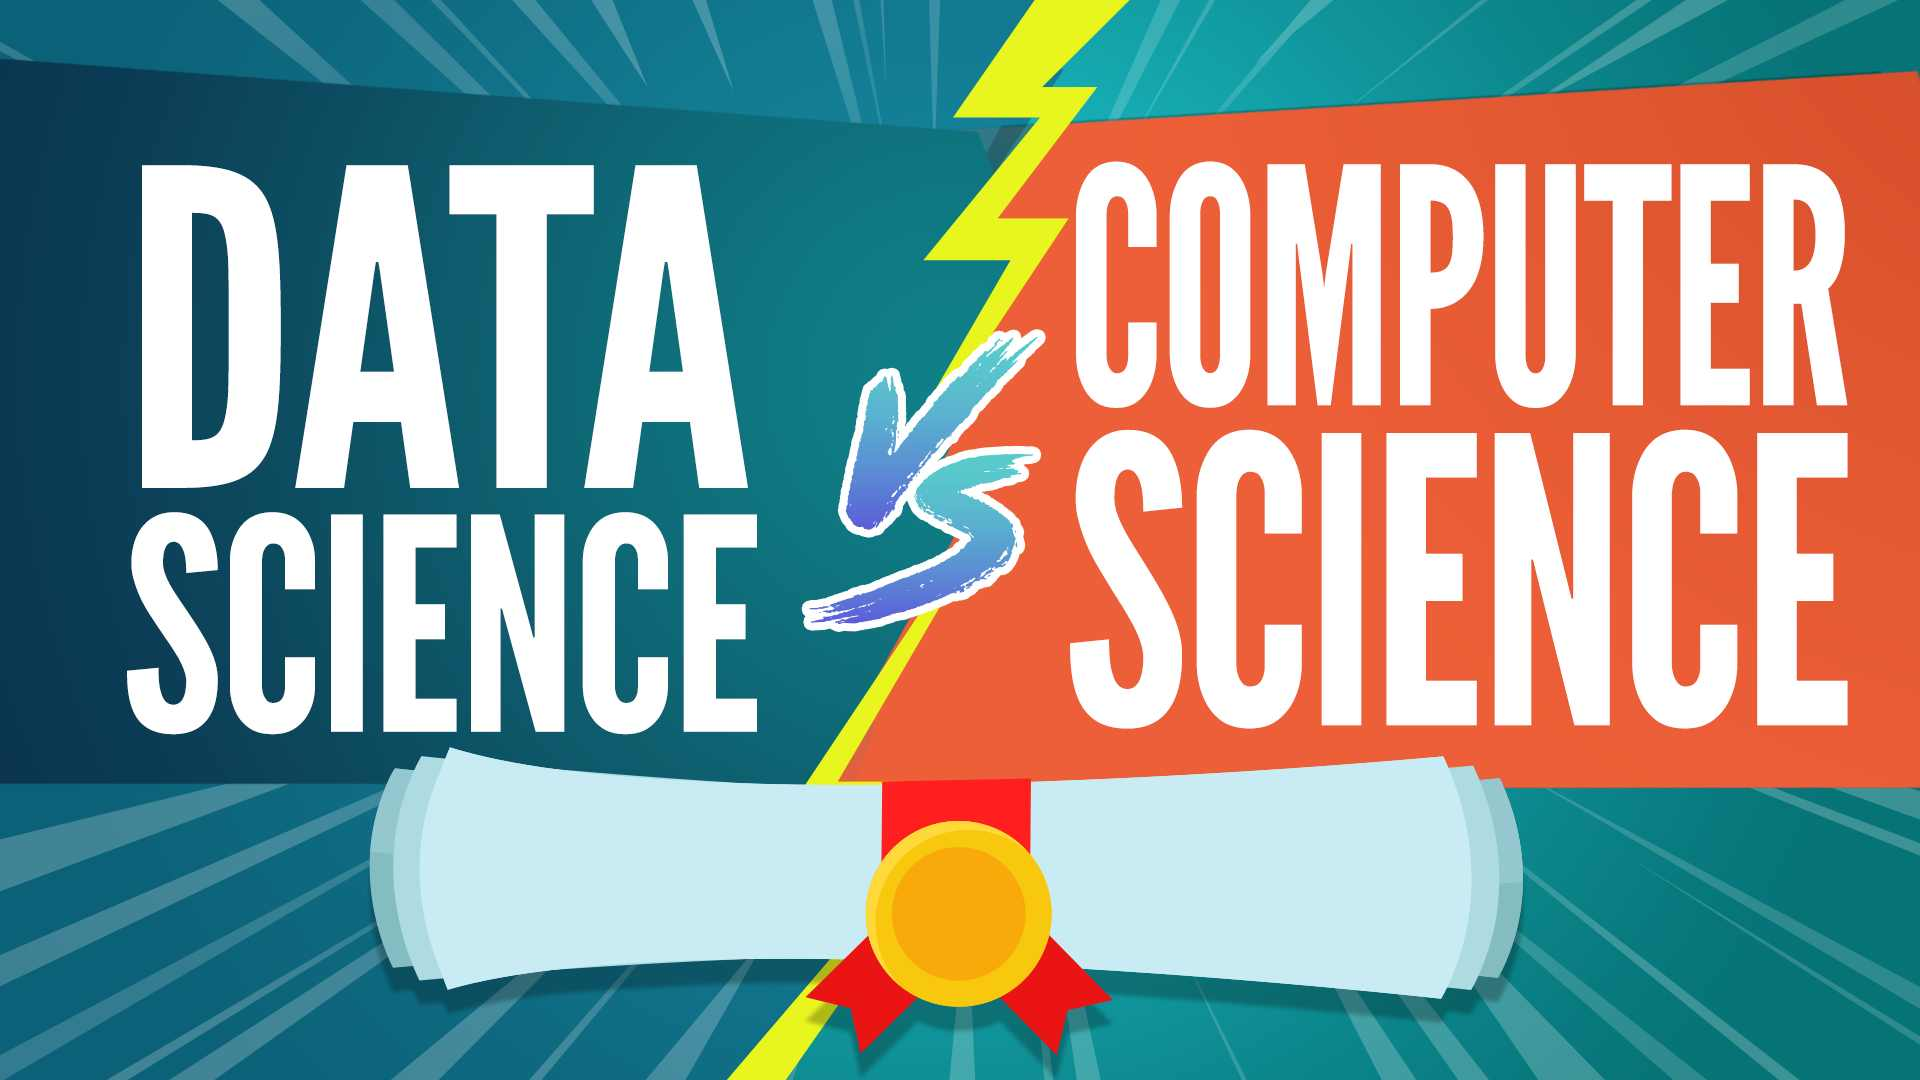 data science vs computer science, data science vs computer science degree, data science degree or computer science degree